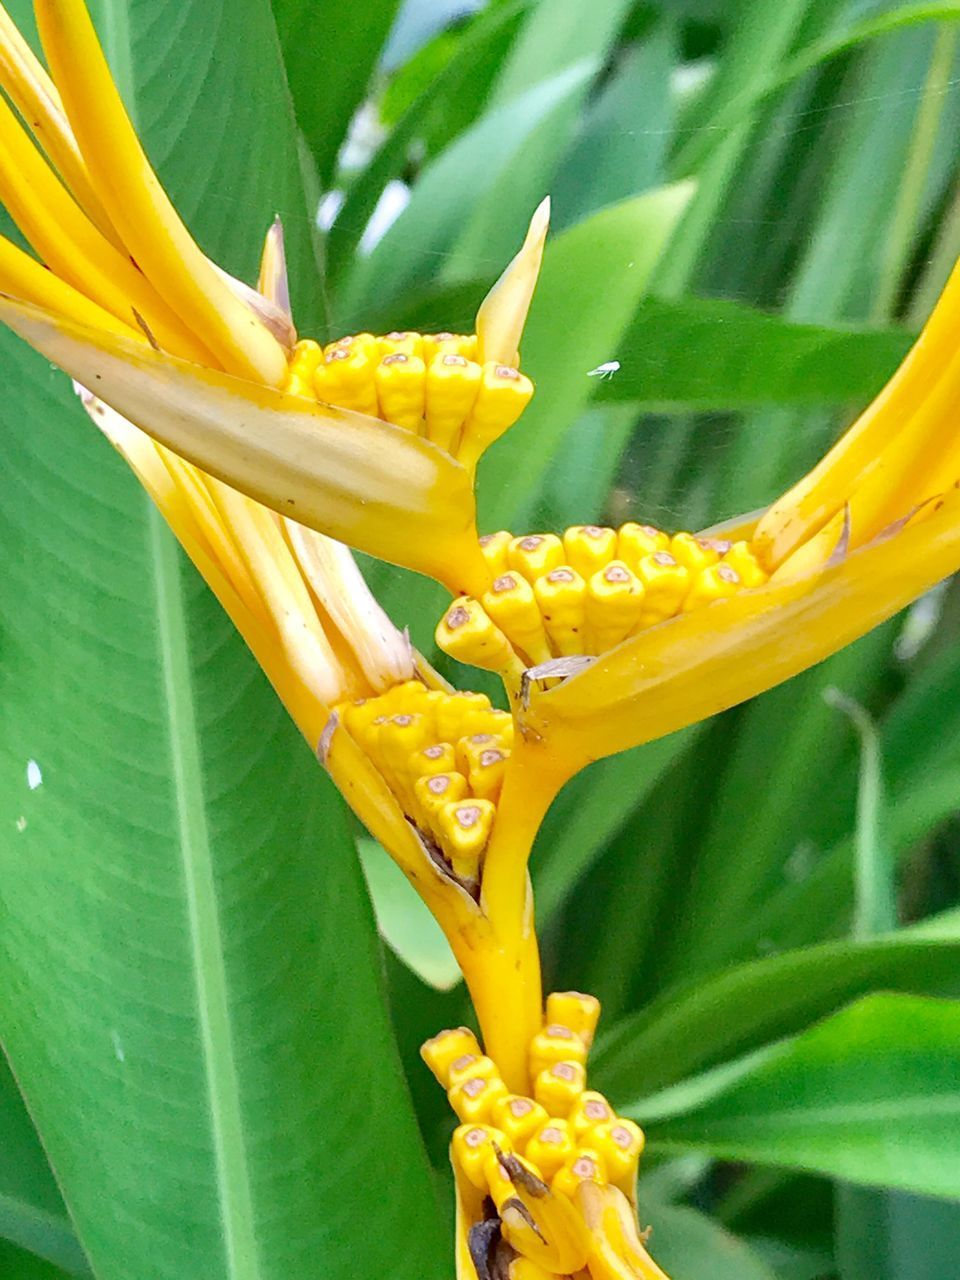 plant, yellow, flower, flowering plant, beauty in nature, growth, close-up, green color, vulnerability, fragility, freshness, plant part, leaf, day, nature, no people, petal, botany, inflorescence, flower head, outdoors